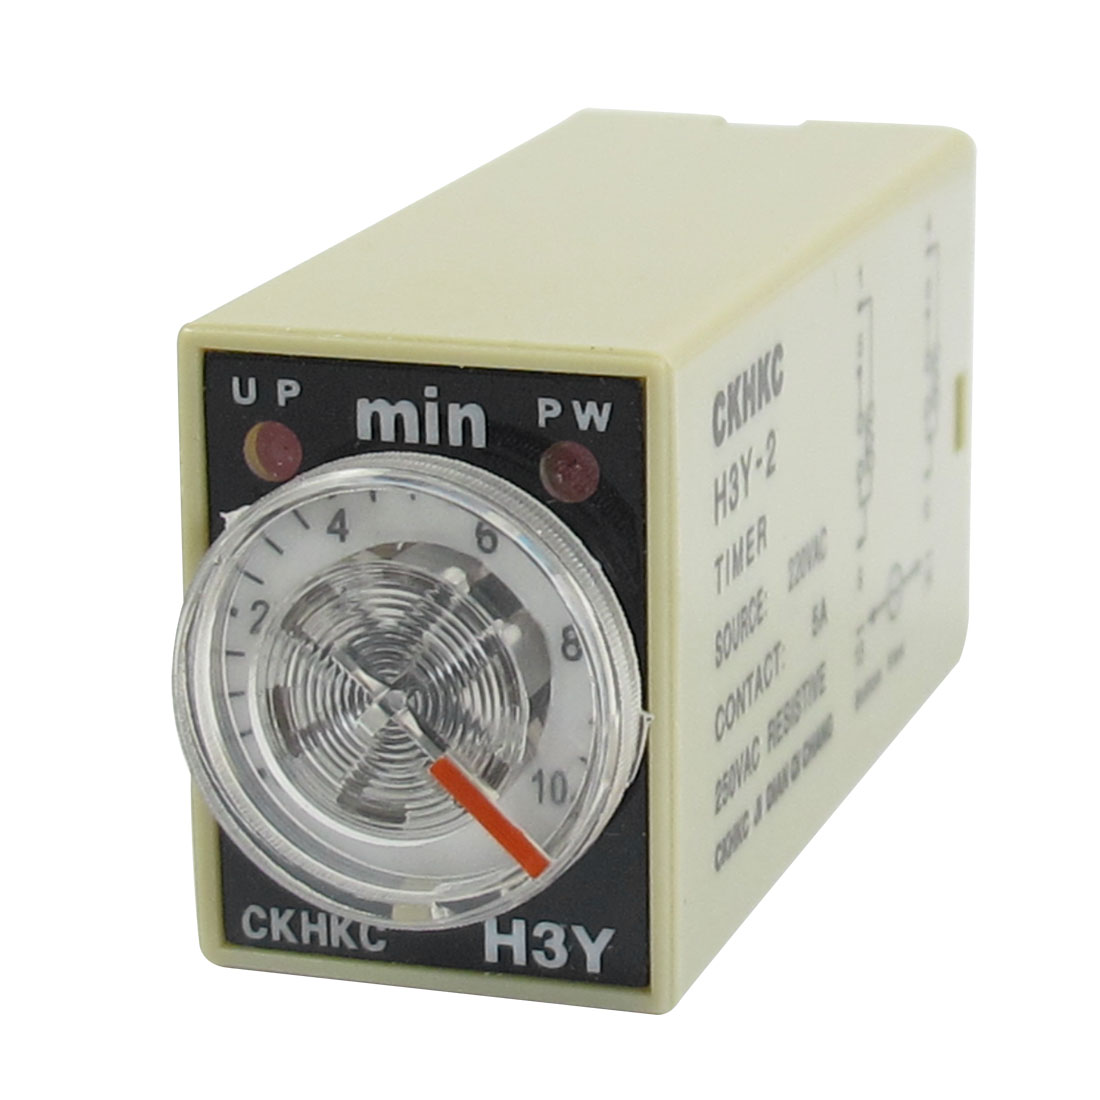 H3Y-2 AC 220V DPDT 0-10 Minutes 10M 8 Pins Power on Time Delay Relay